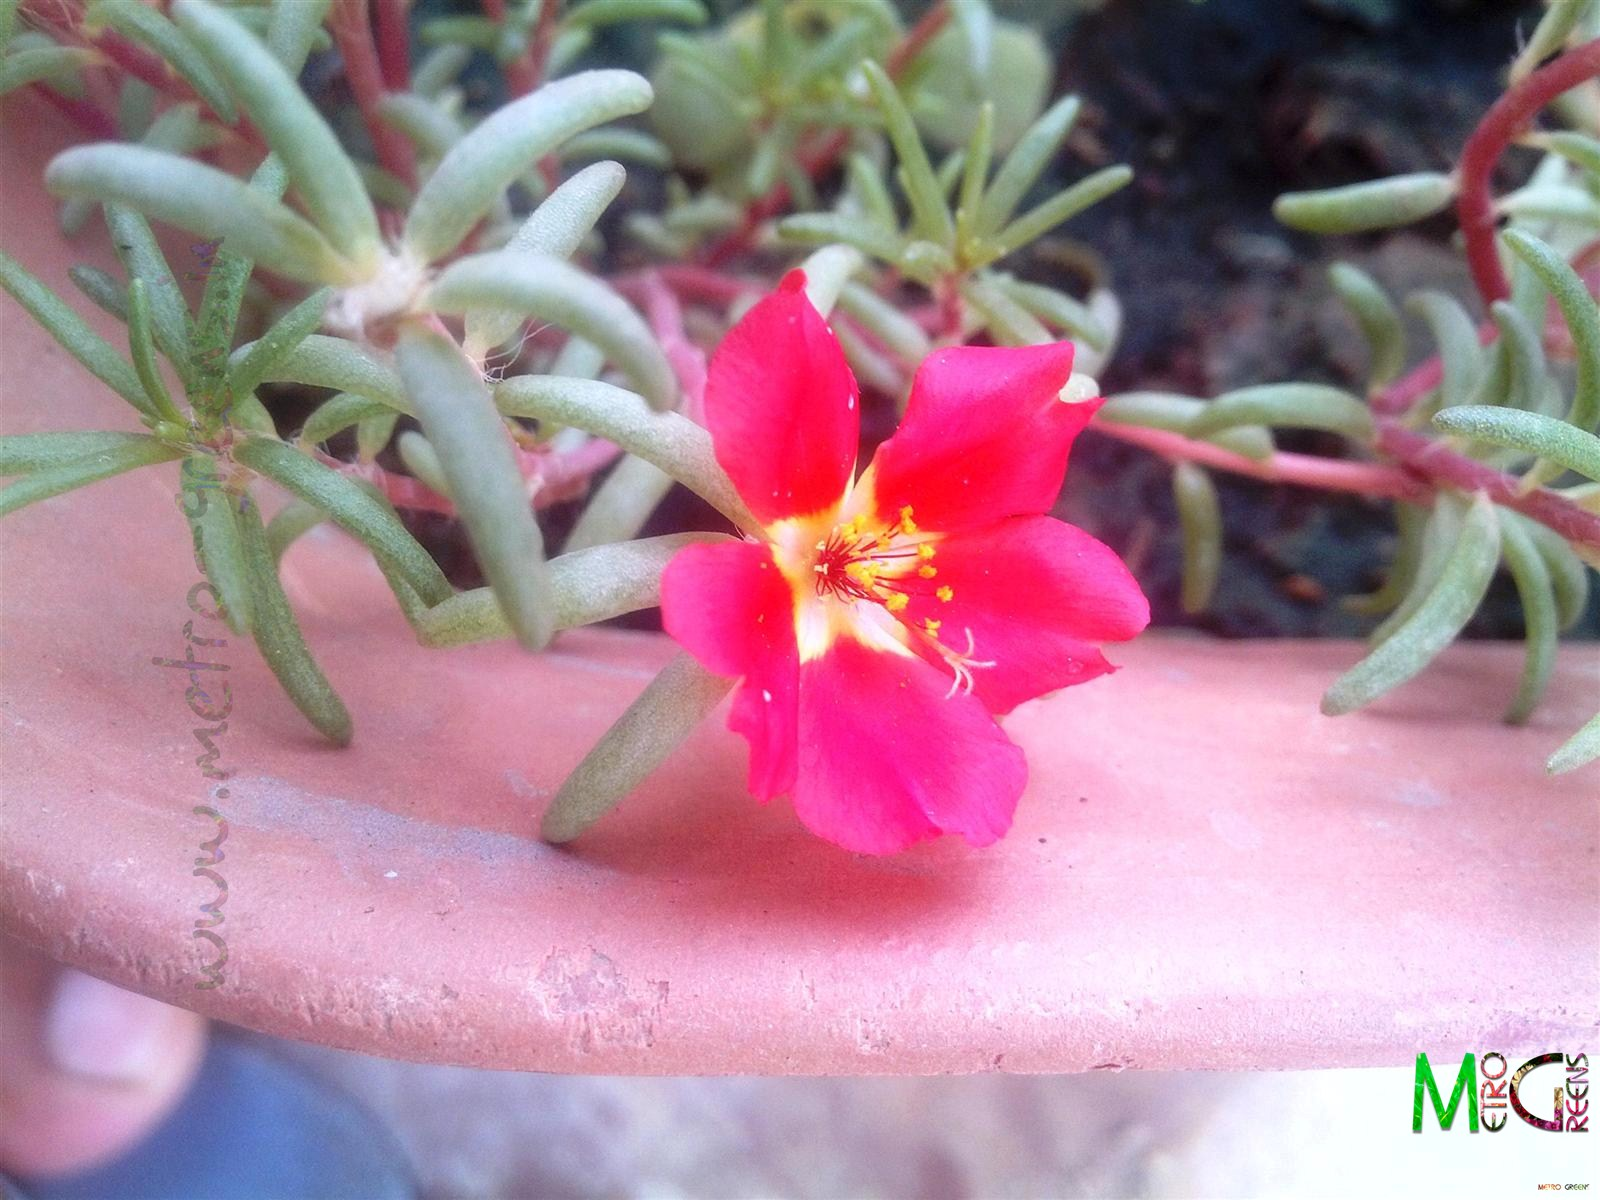 Metro Greens: A red portulaca bloom.